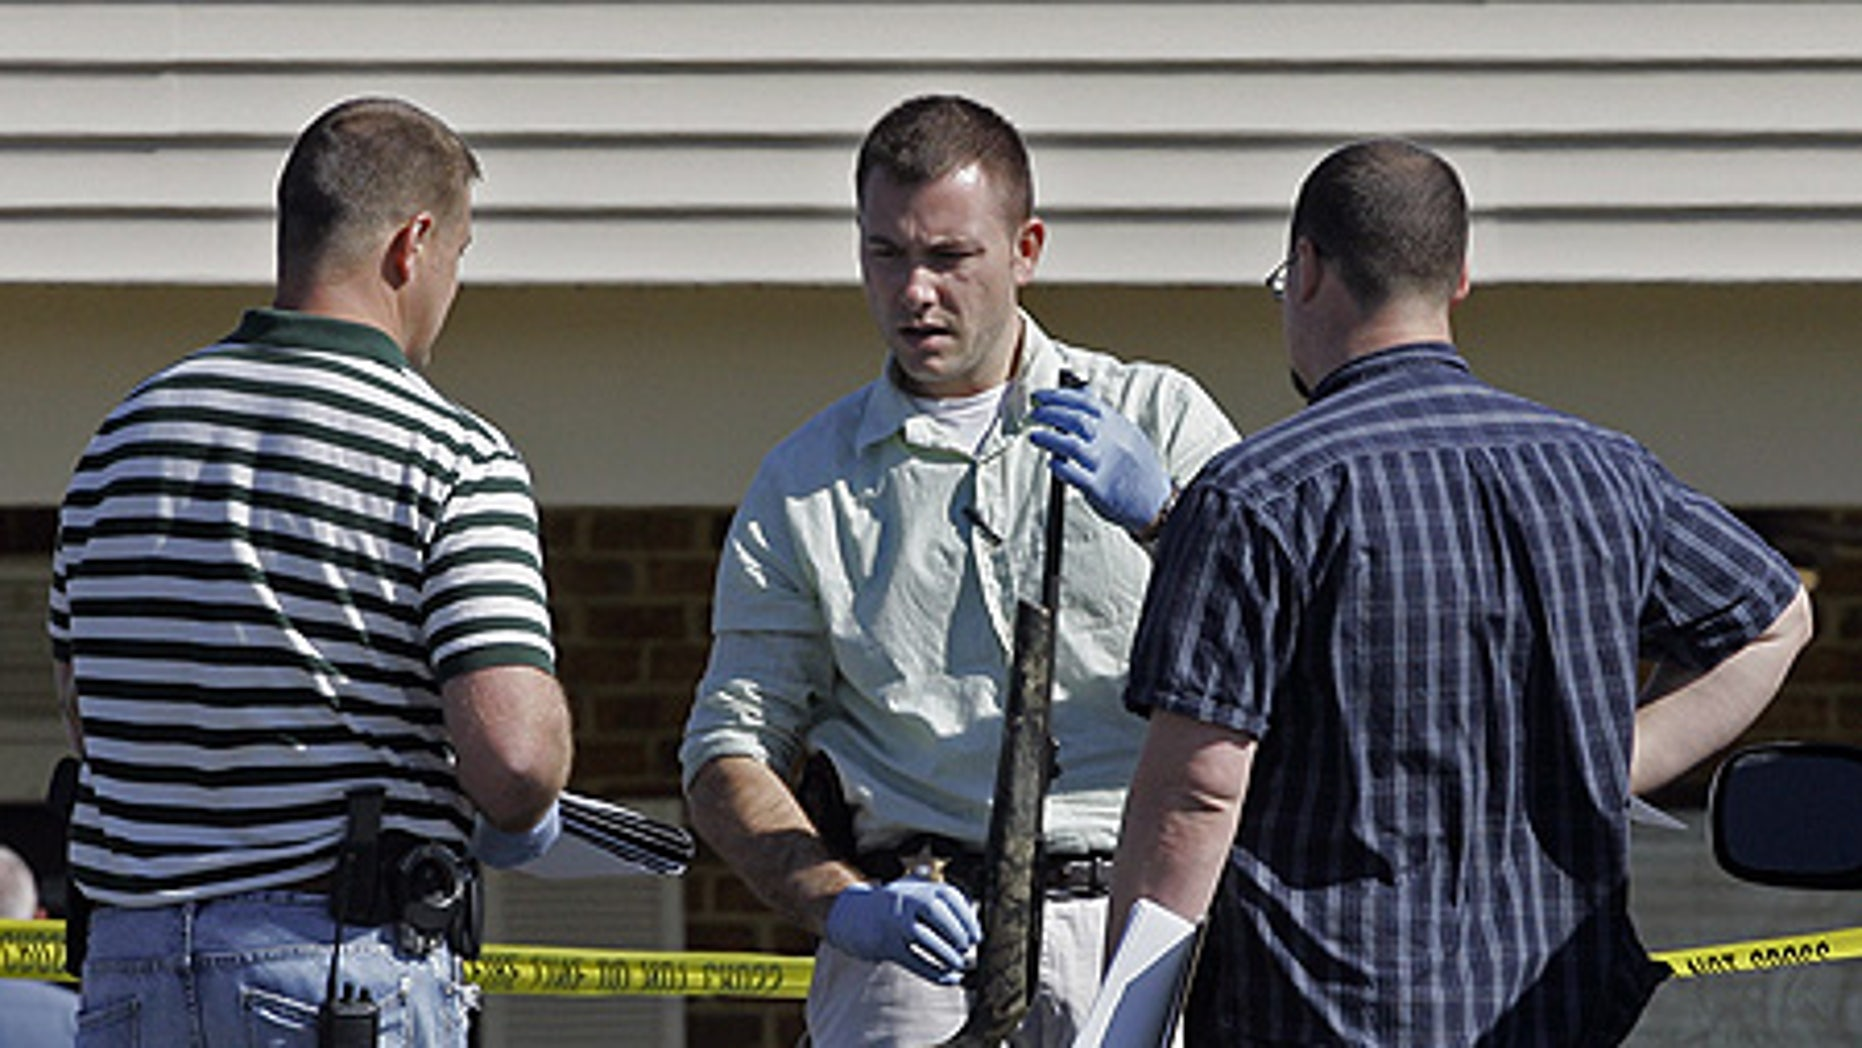 Mar. 29: Investigators examine a weapon at the scene where a gunman opened fire at a nursing home.